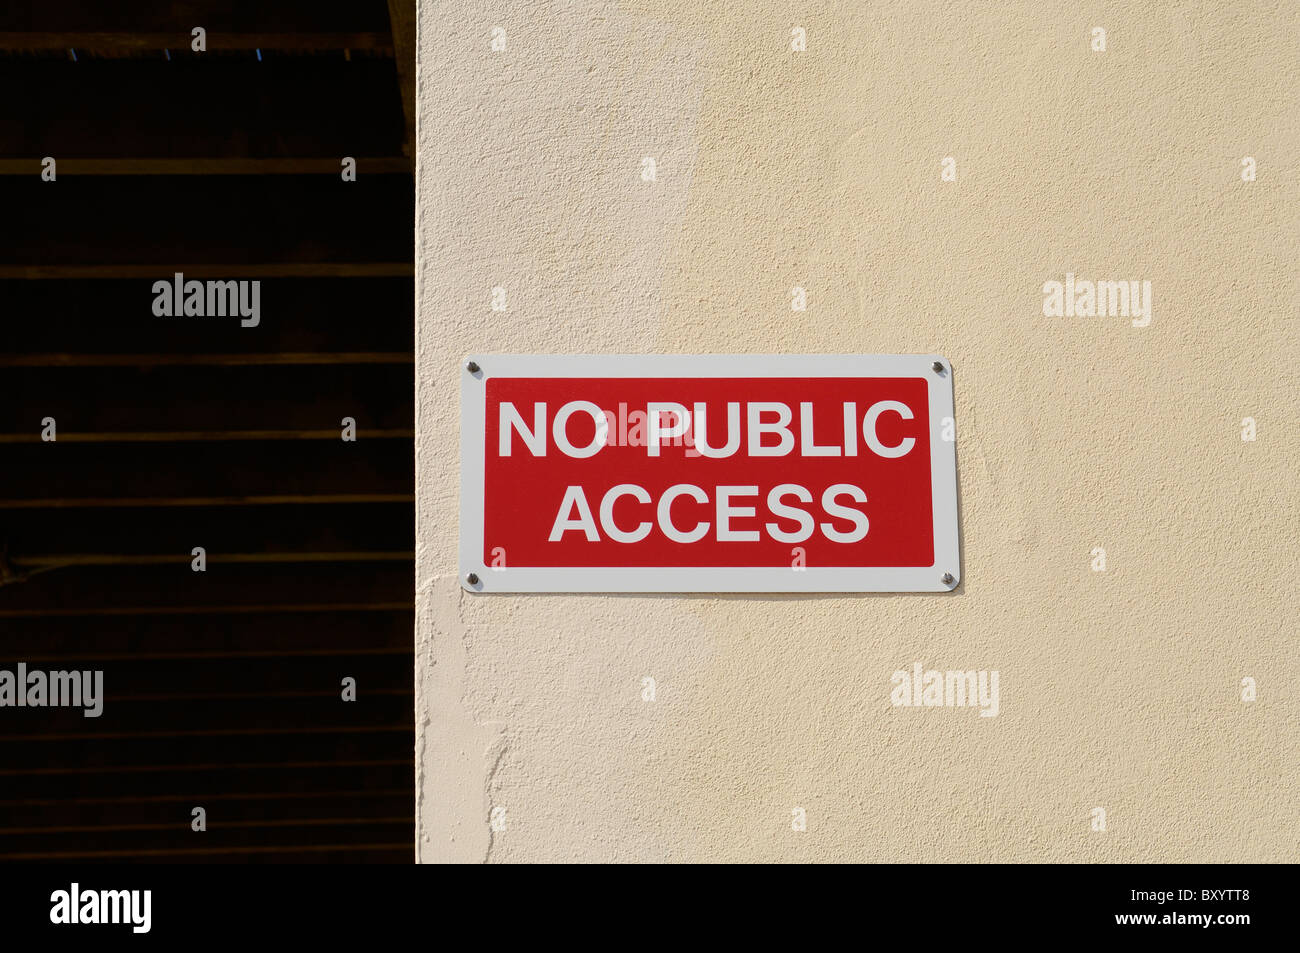 No Public Access sign on a wall. - Stock Image